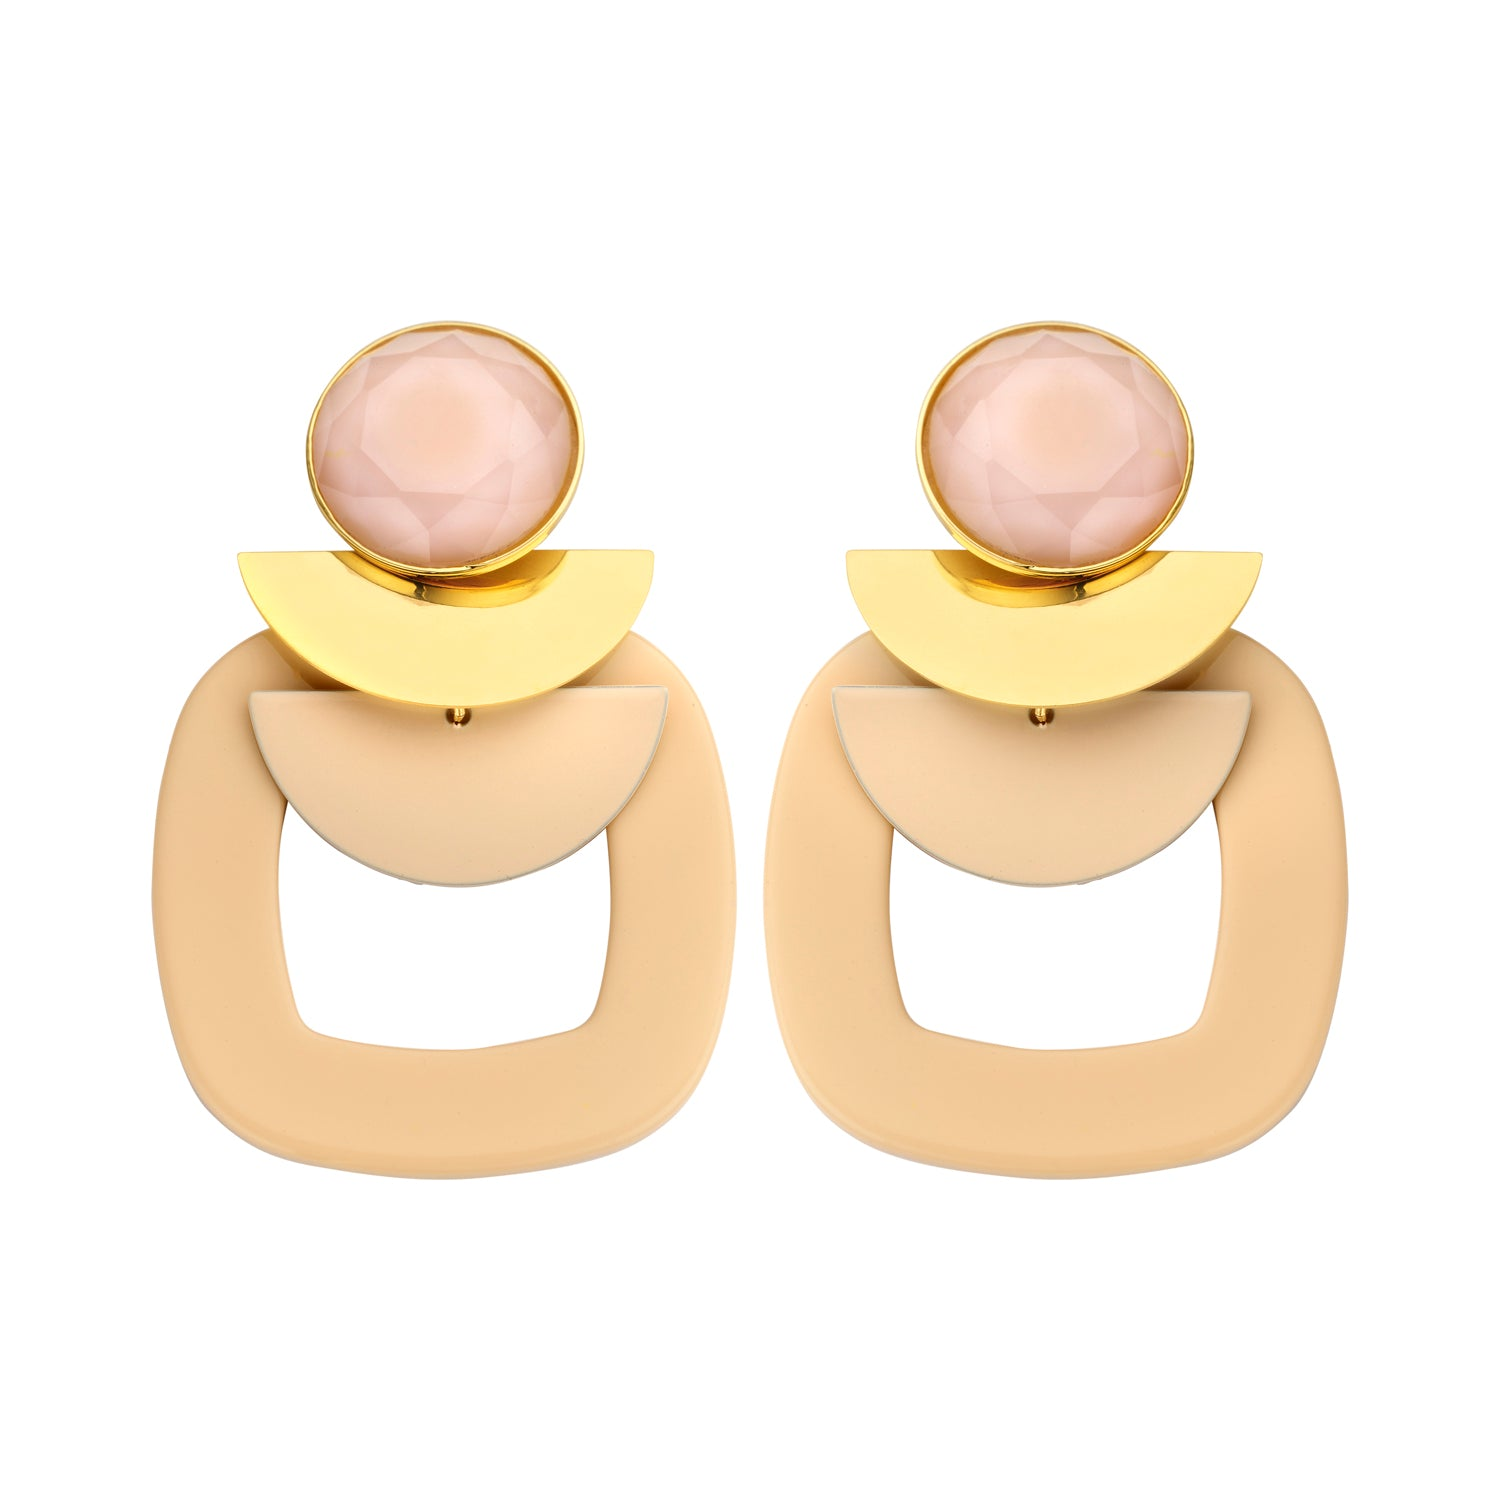 Sonia statement squared nude earrings